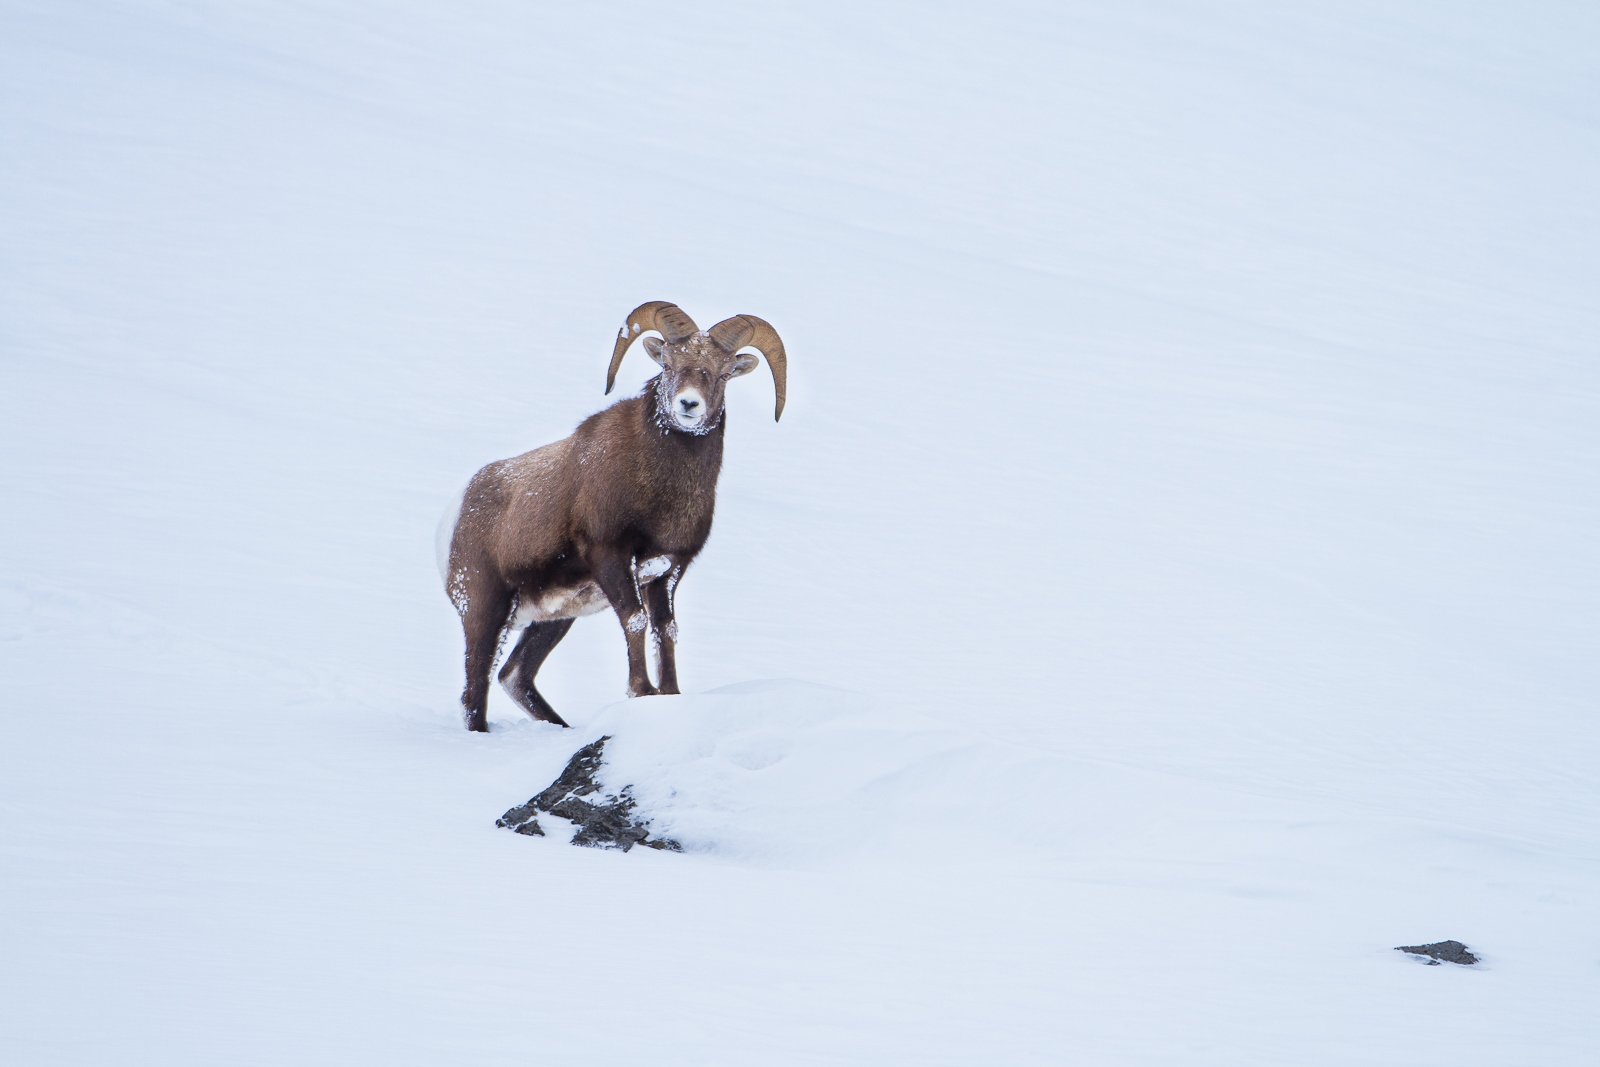 Looking at You,Icefields Parkway, Canada,Sheep,Climb,Snow,Winter, photo